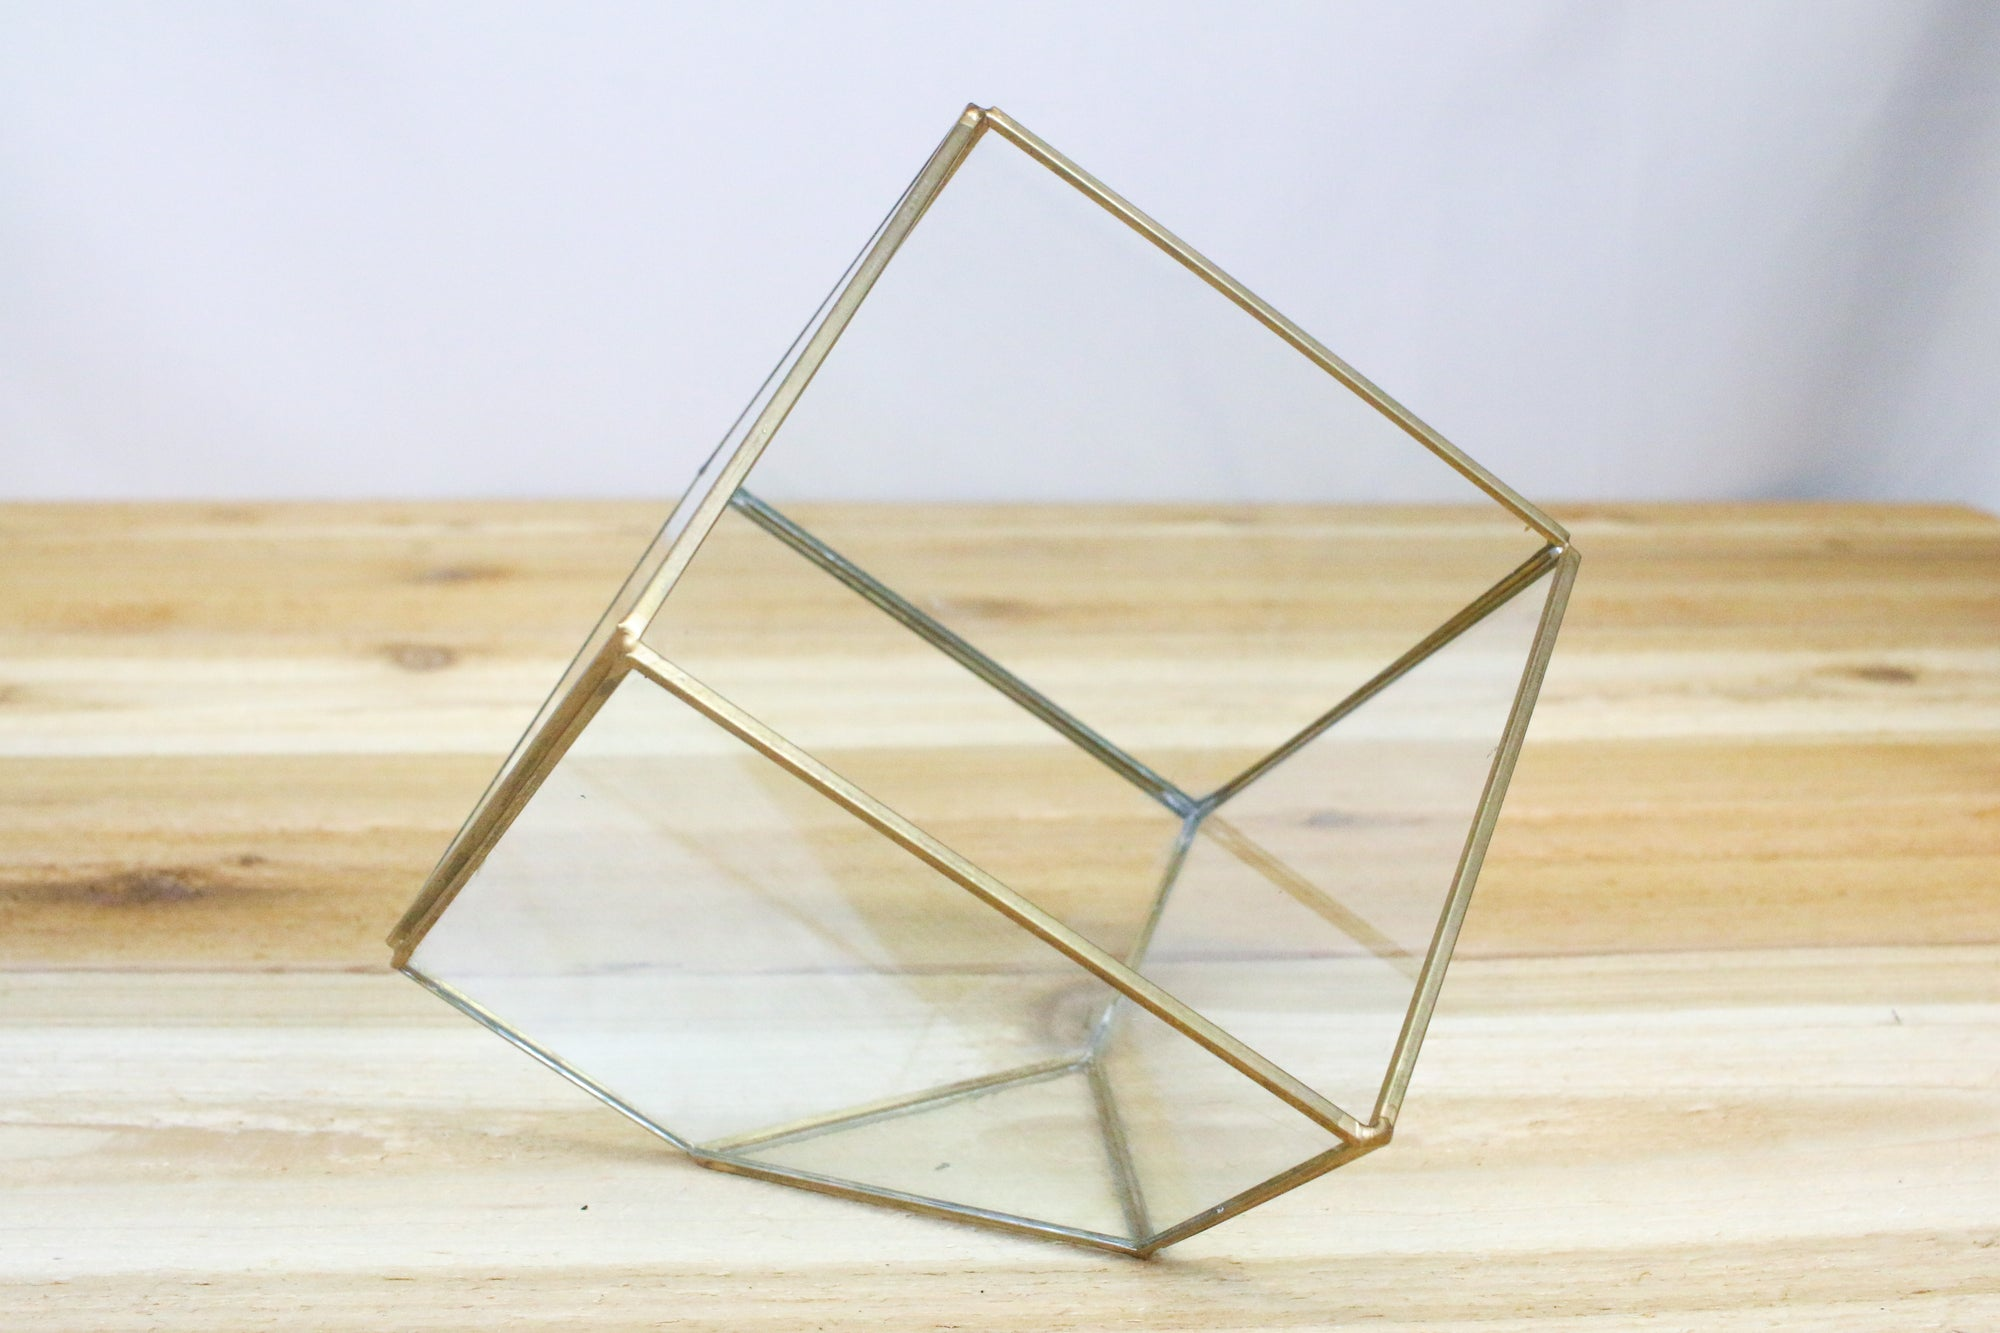 Geometric Air Plant Terrarium - Heptahedron Design with 7 Sides from AirPlantShop.com